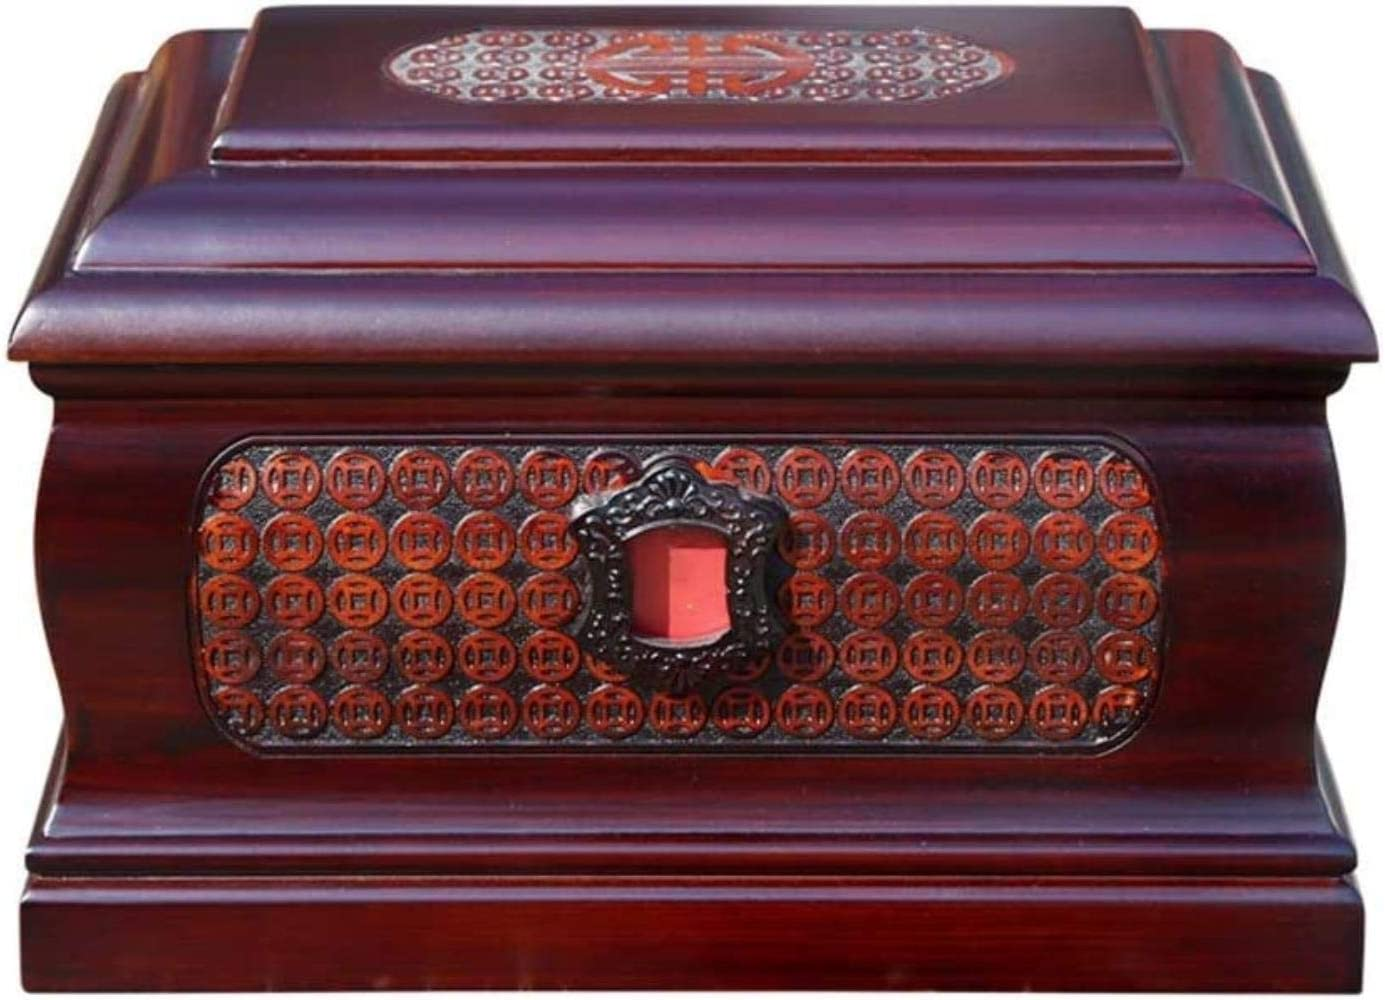 PULLEY Urns for Human Ashes Urn Cremation Houston Mall Woodcarving Adult Pat Cash special price